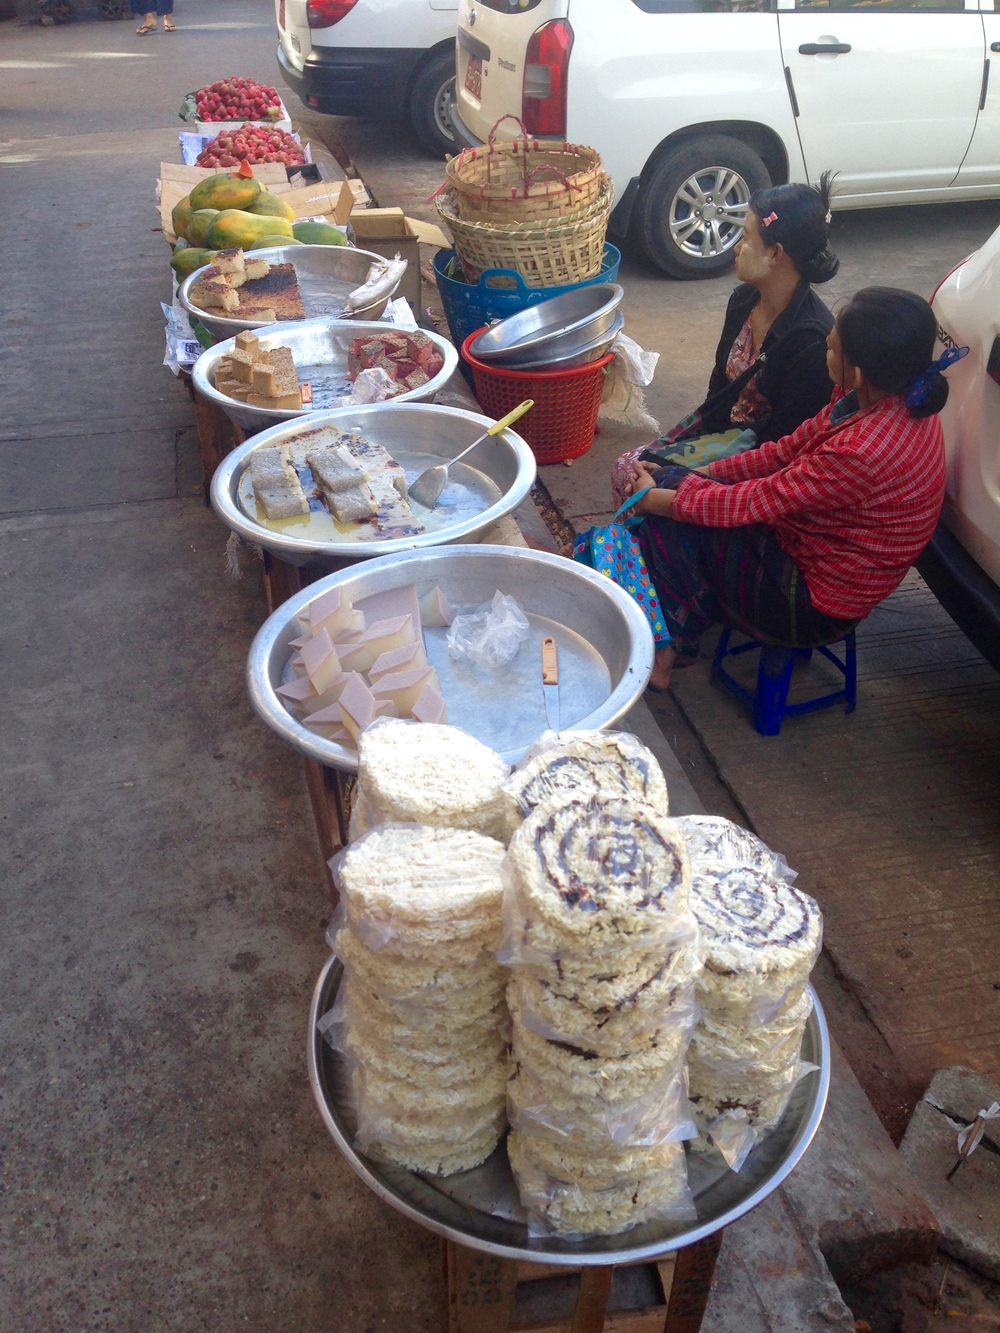 Delicious breakfast treats on the street in yangon!